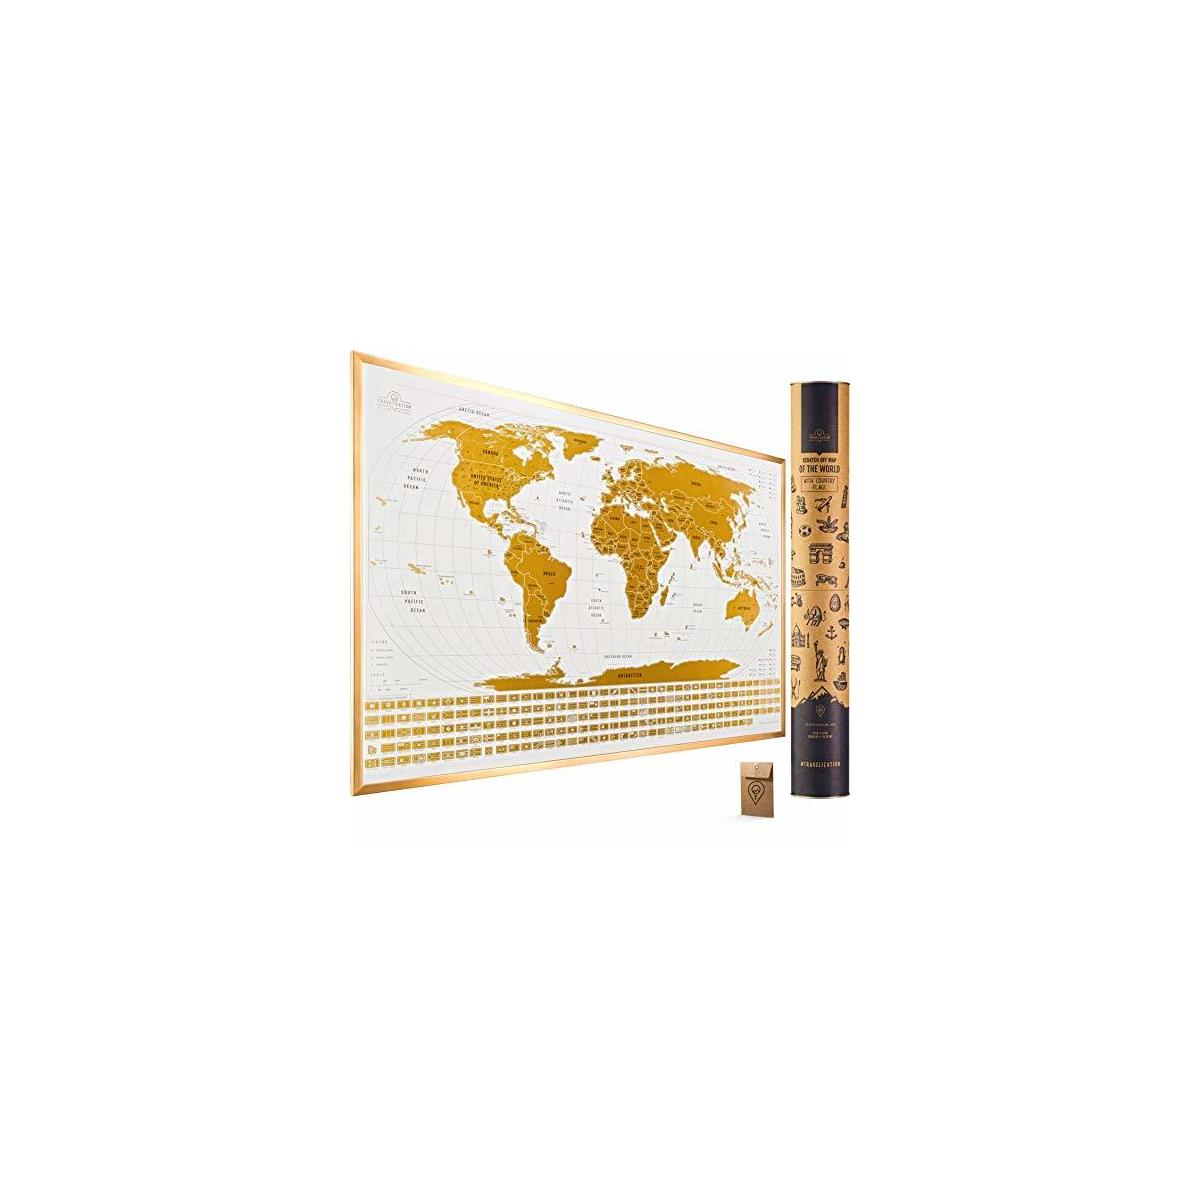 Large Scratch Off Map of The World with Flags - 24x17 inches Scratch Off World Map Wall Poster with US States & Flags - Original Travel World Scratch Map, Travel Decor, Designed for Travelers